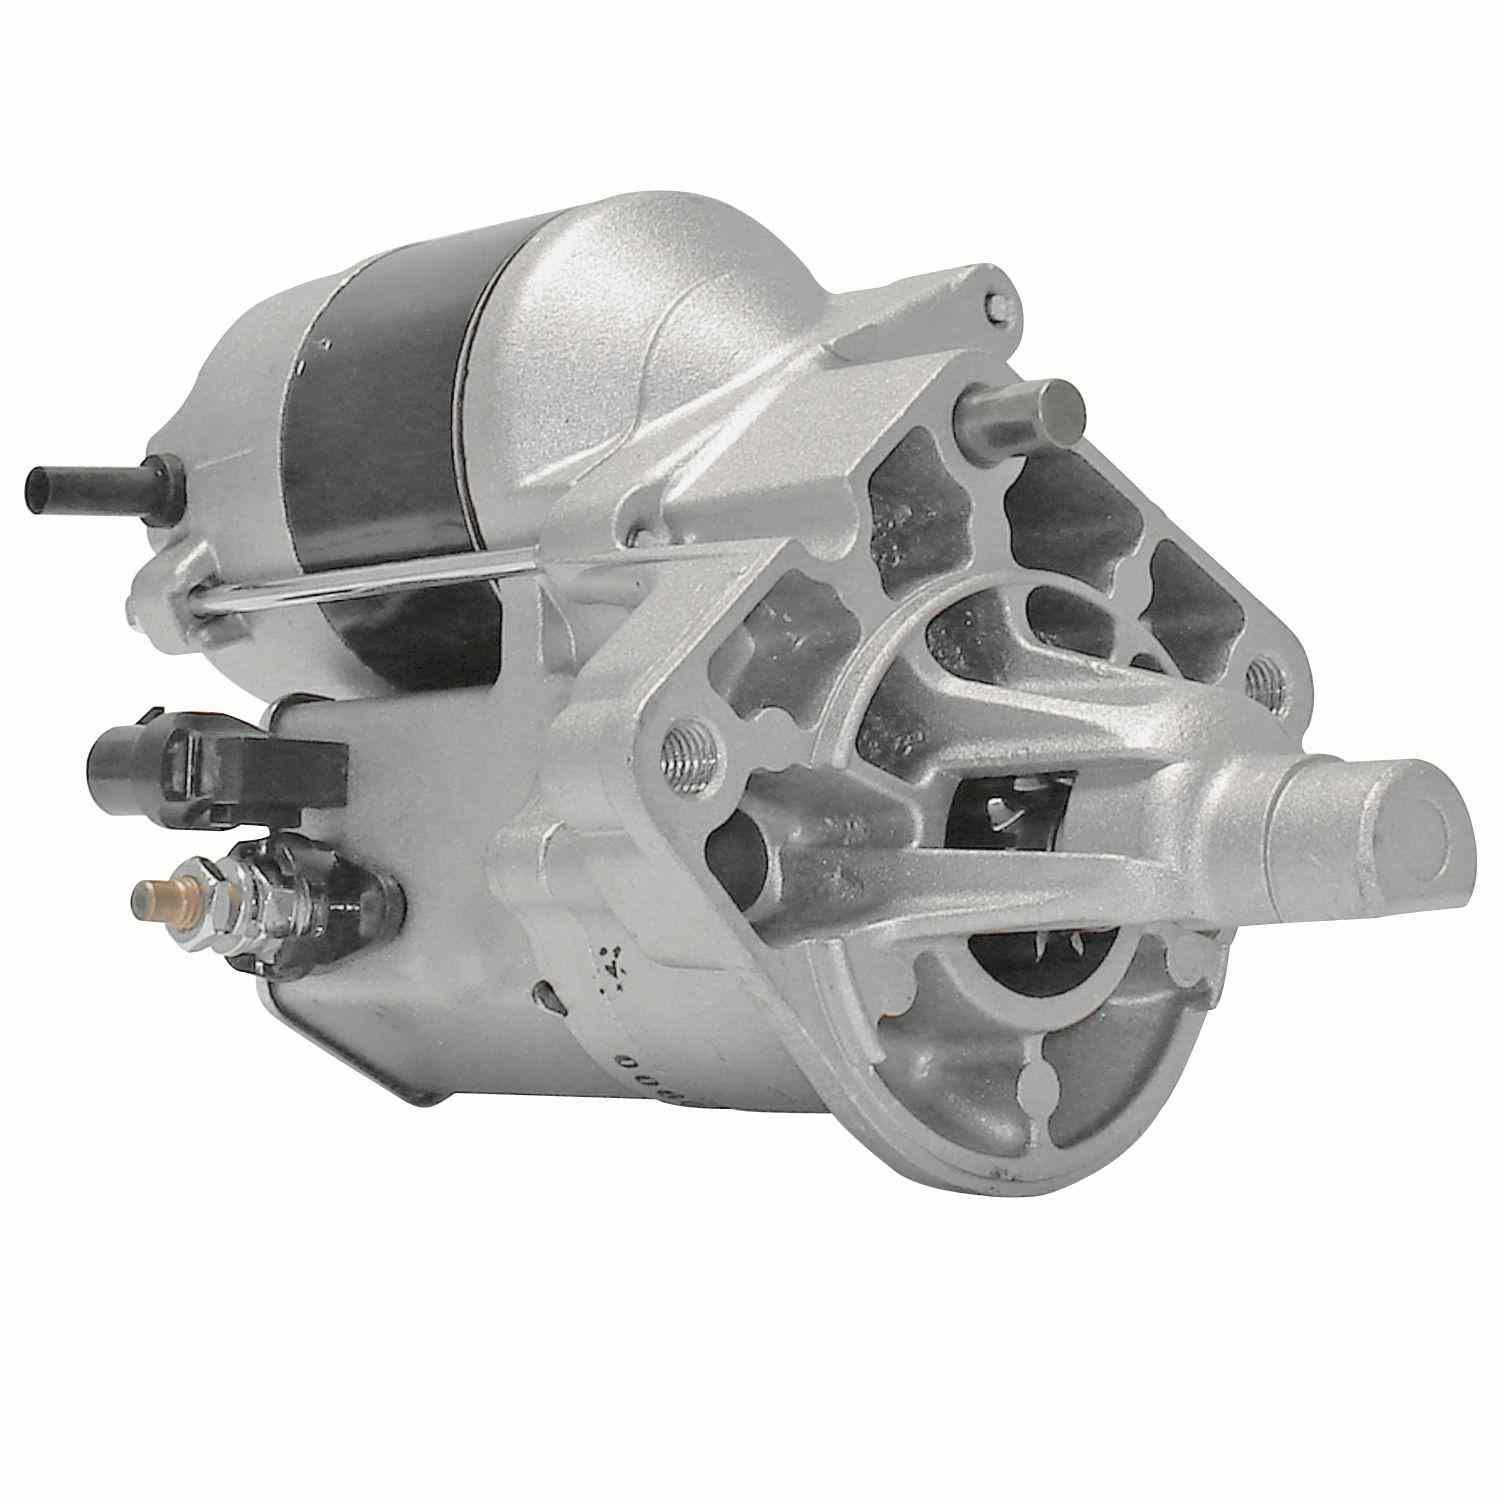 ACDELCO GOLD/PROFESSIONAL - Reman Starter Motor - DCC 336-1721A